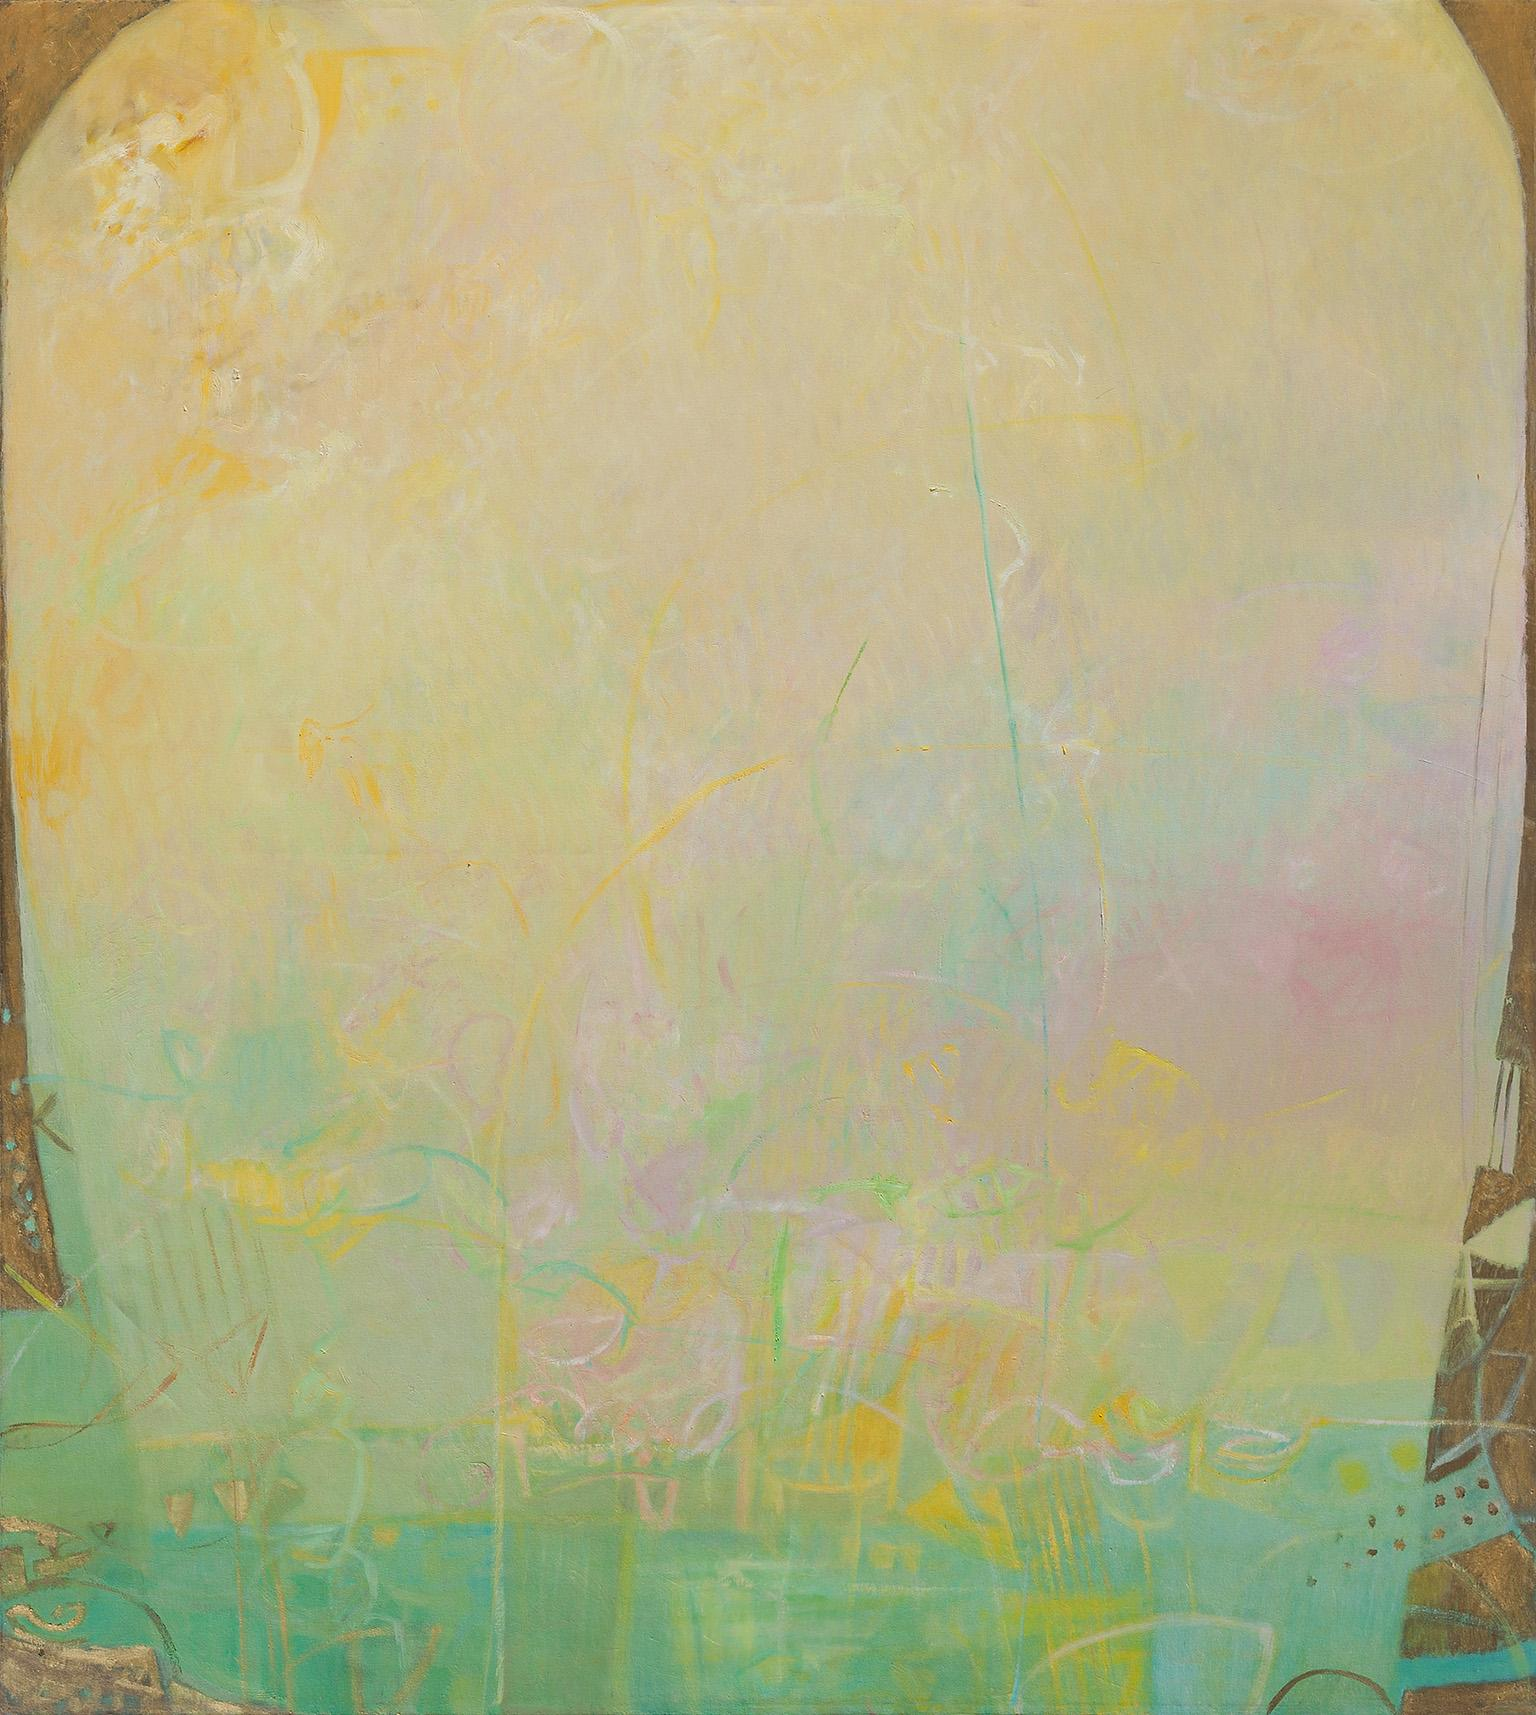 The Hours: The Middle of the Day - Large Abstract Green and Yellow Oil Painting